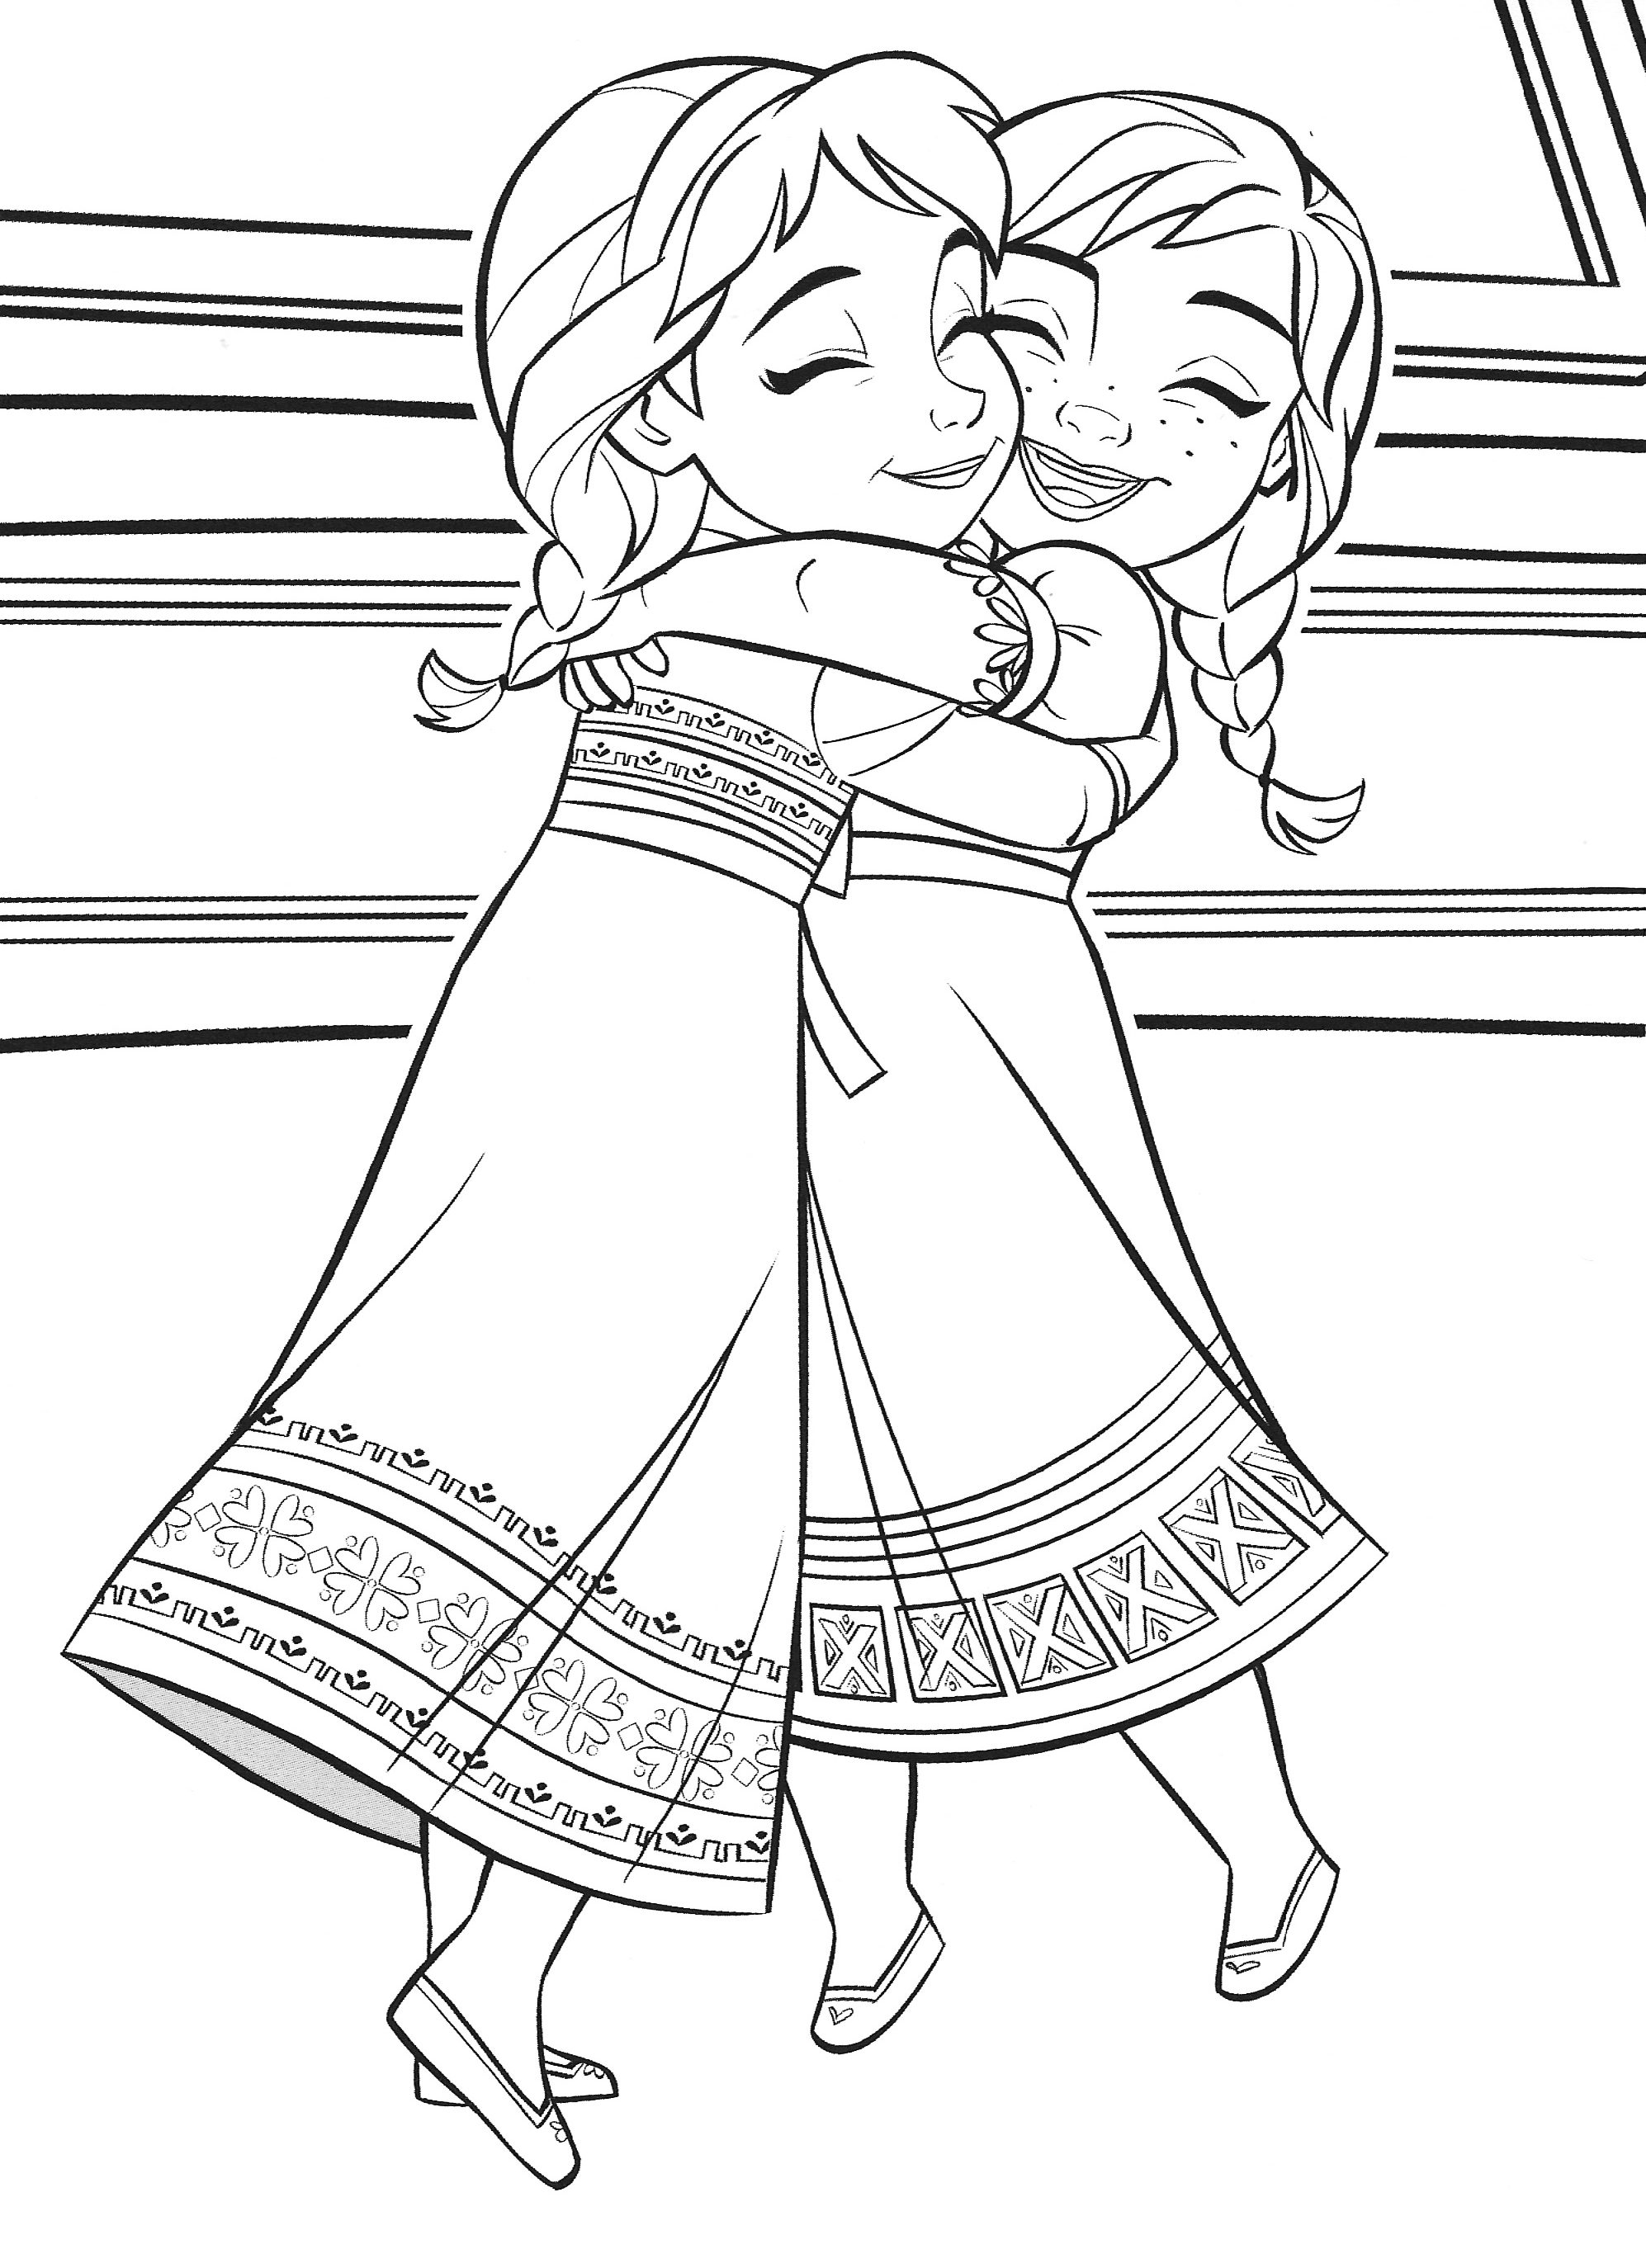 - Frozen 2 Elsa And Anna Coloring Pages - YouLoveIt.com